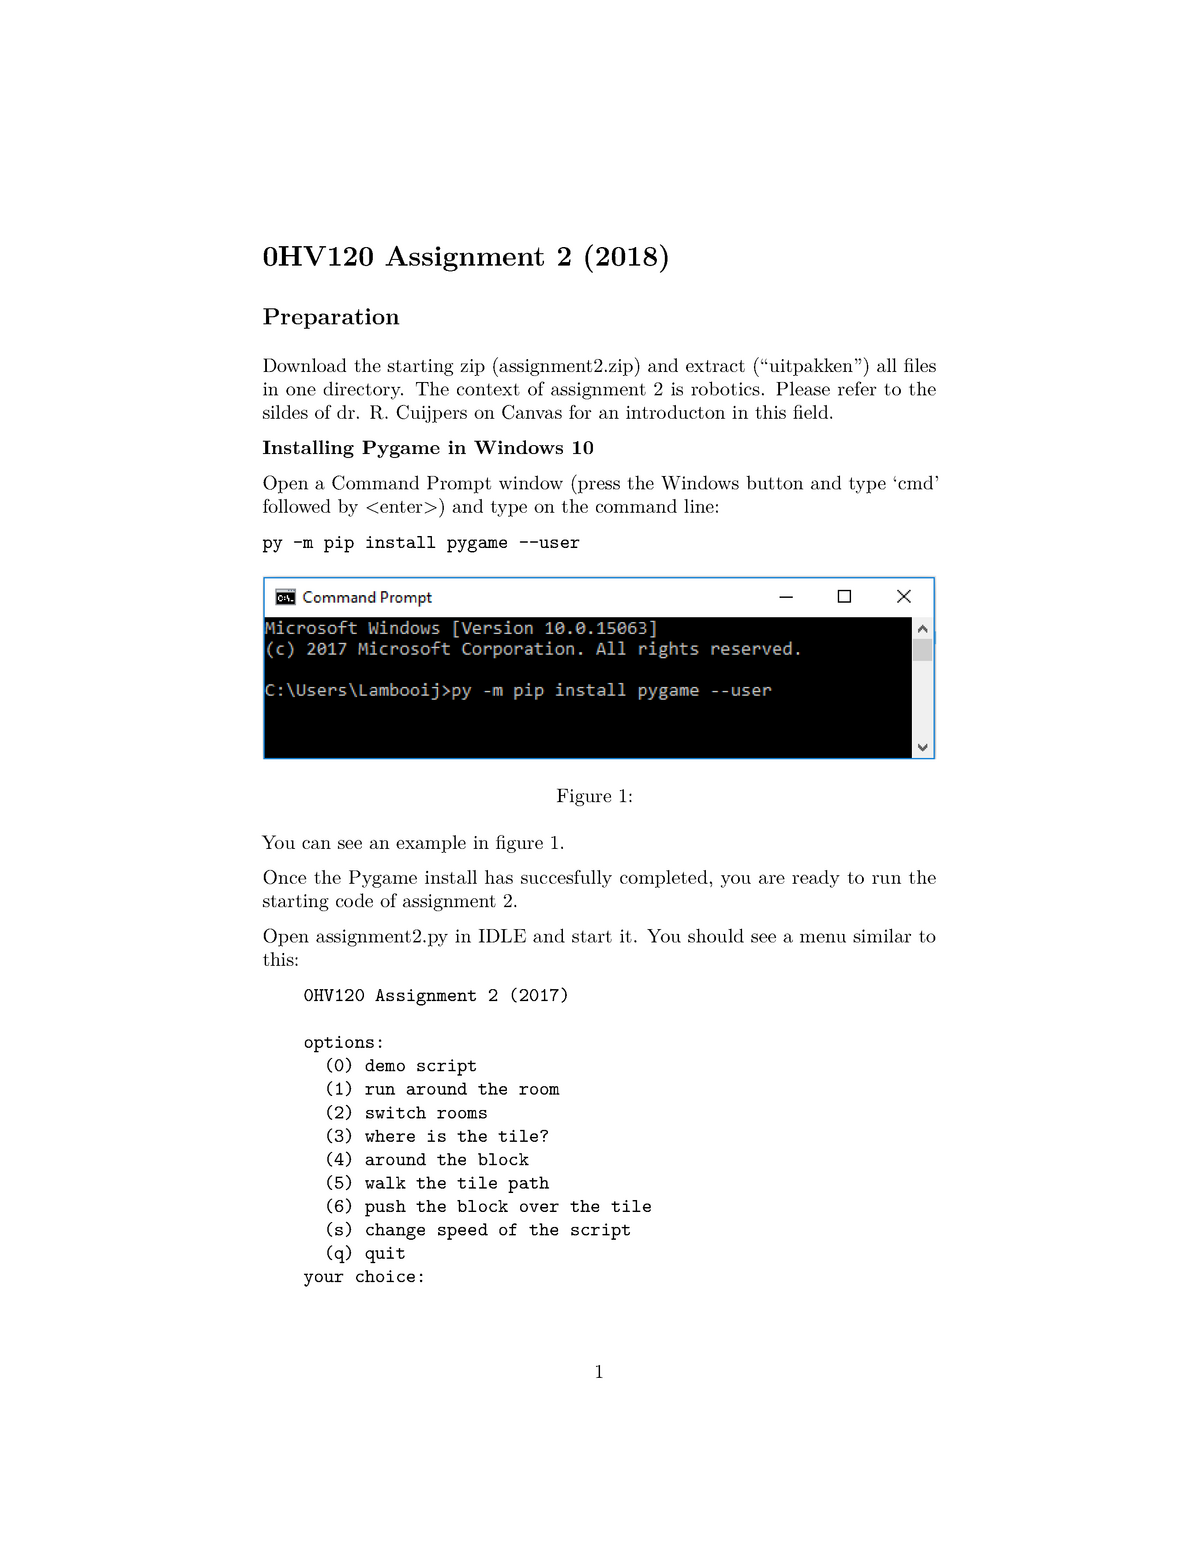 0HV120 Assignment 2 - very fun! - PSY 262: An Approach to